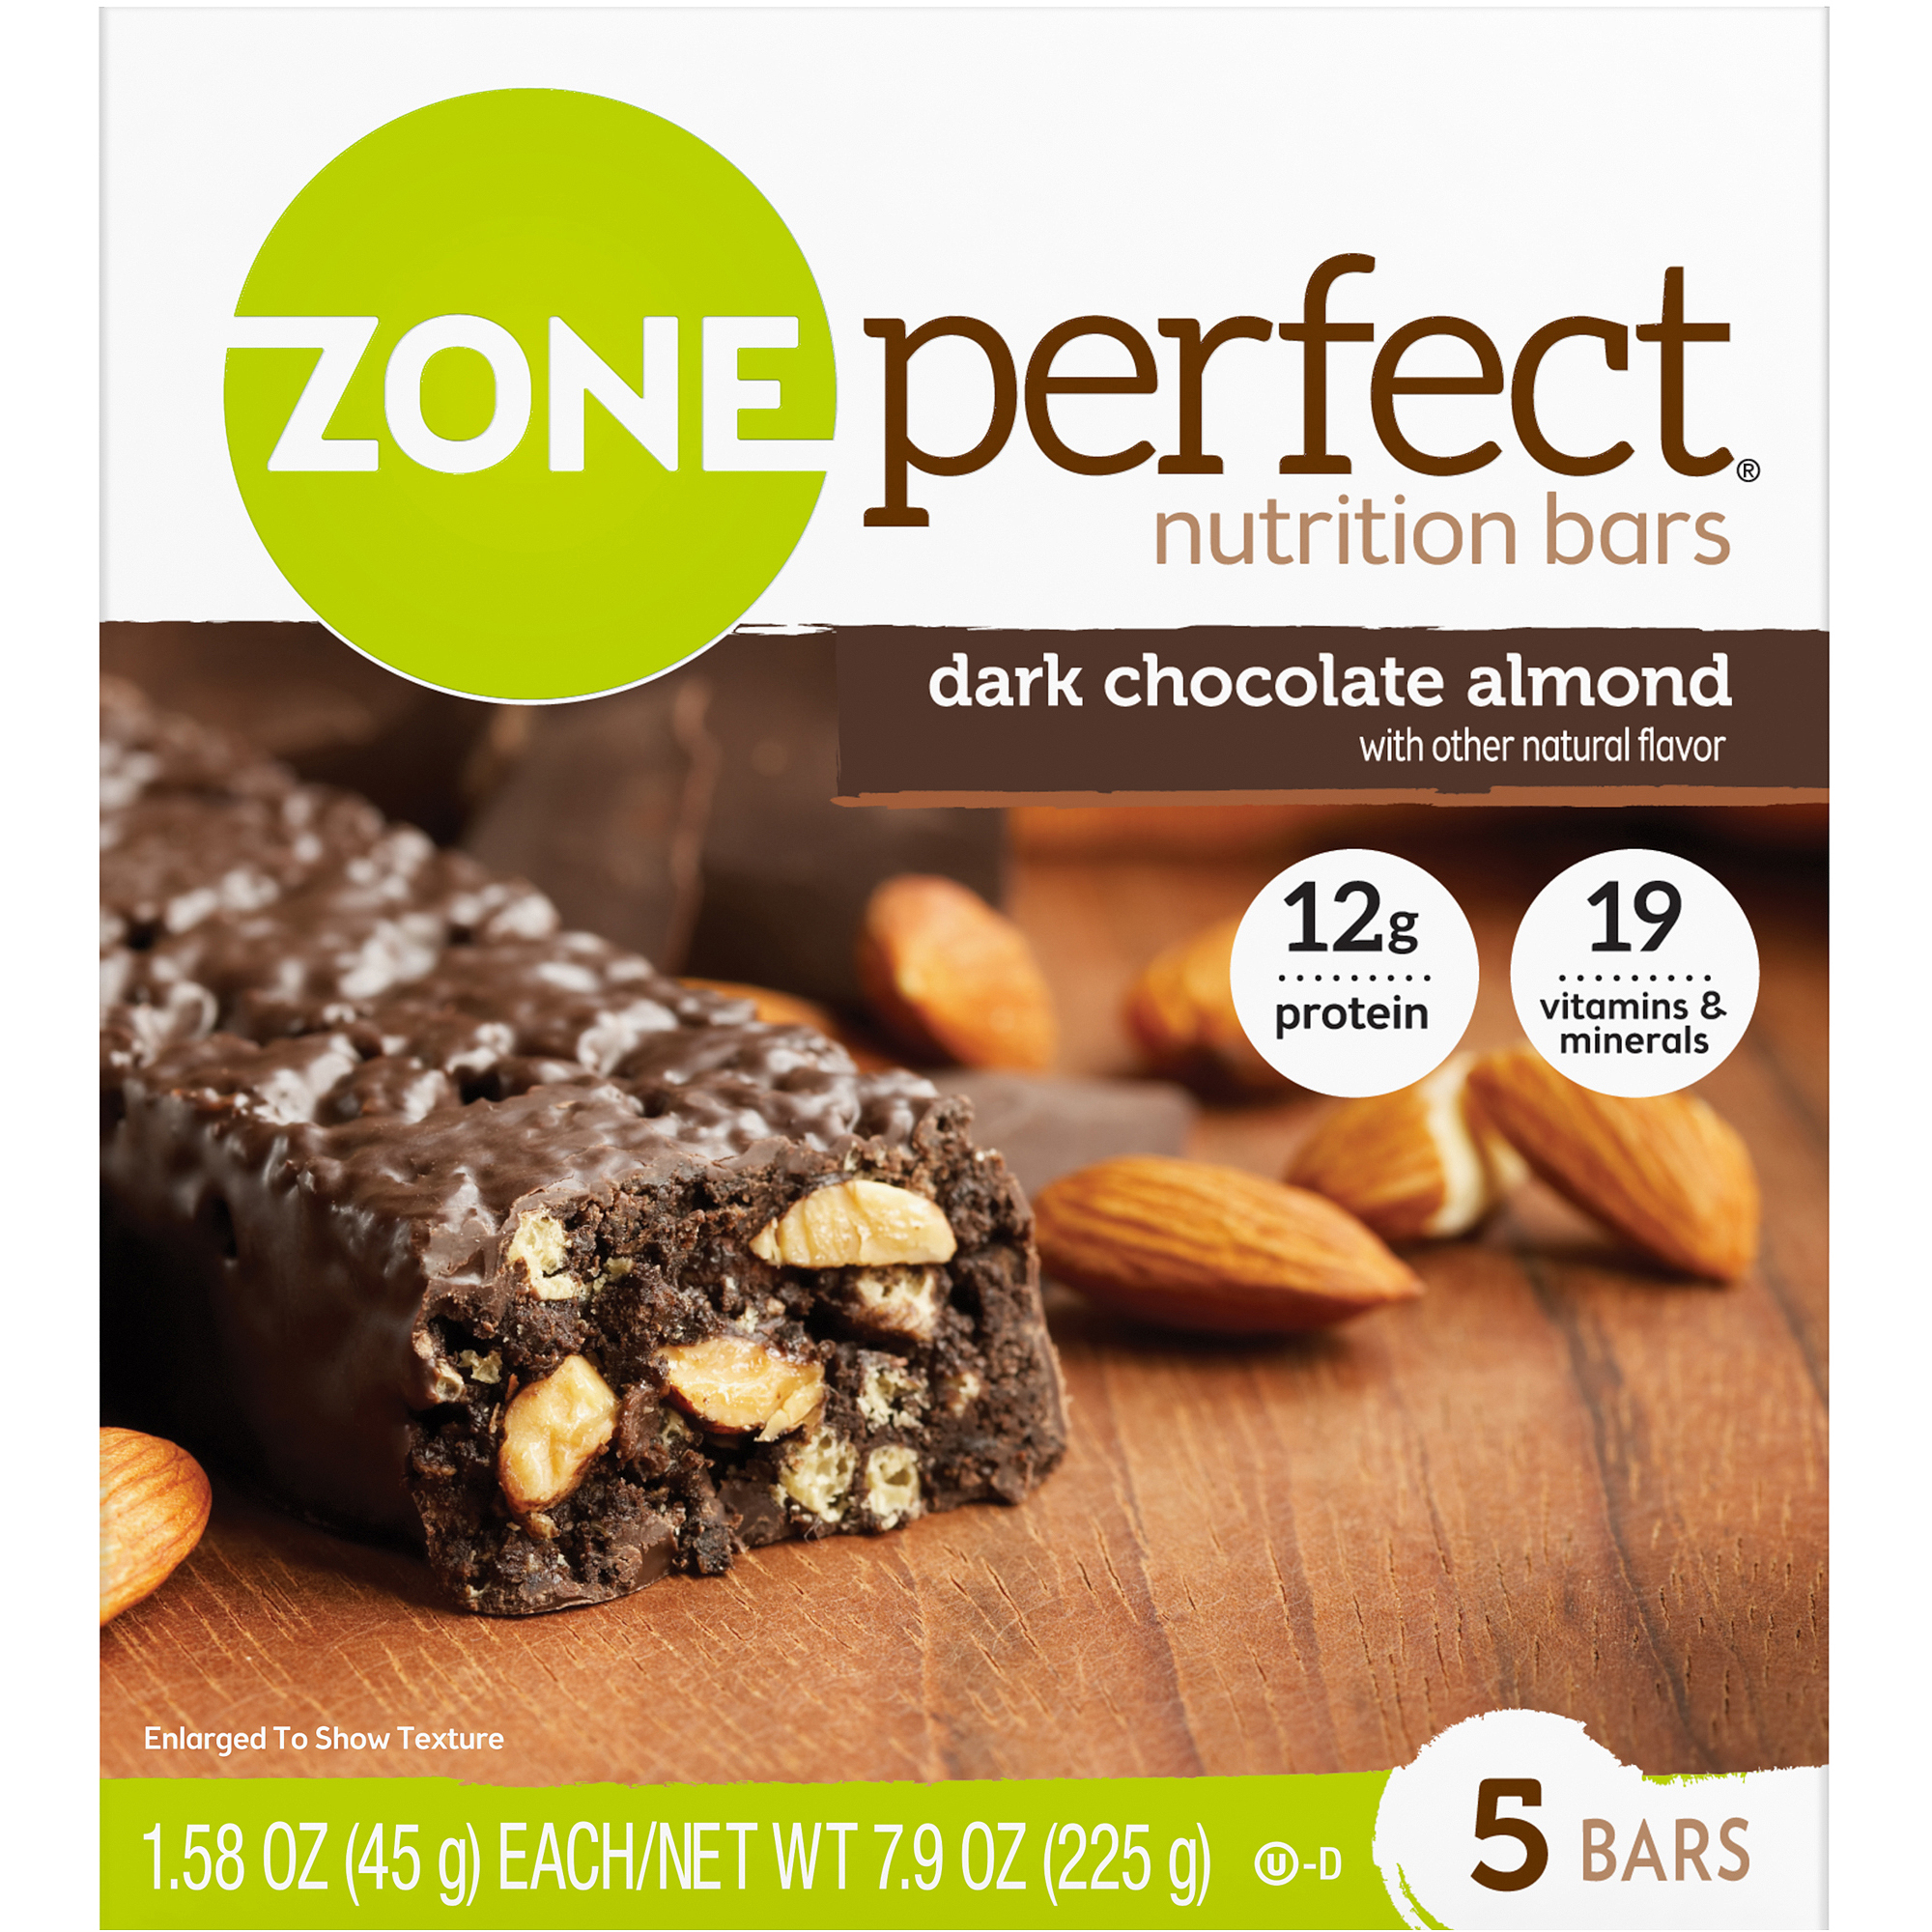 ZonePerfect Nutrition Bars, Dark Chocolate Almond, 5 count